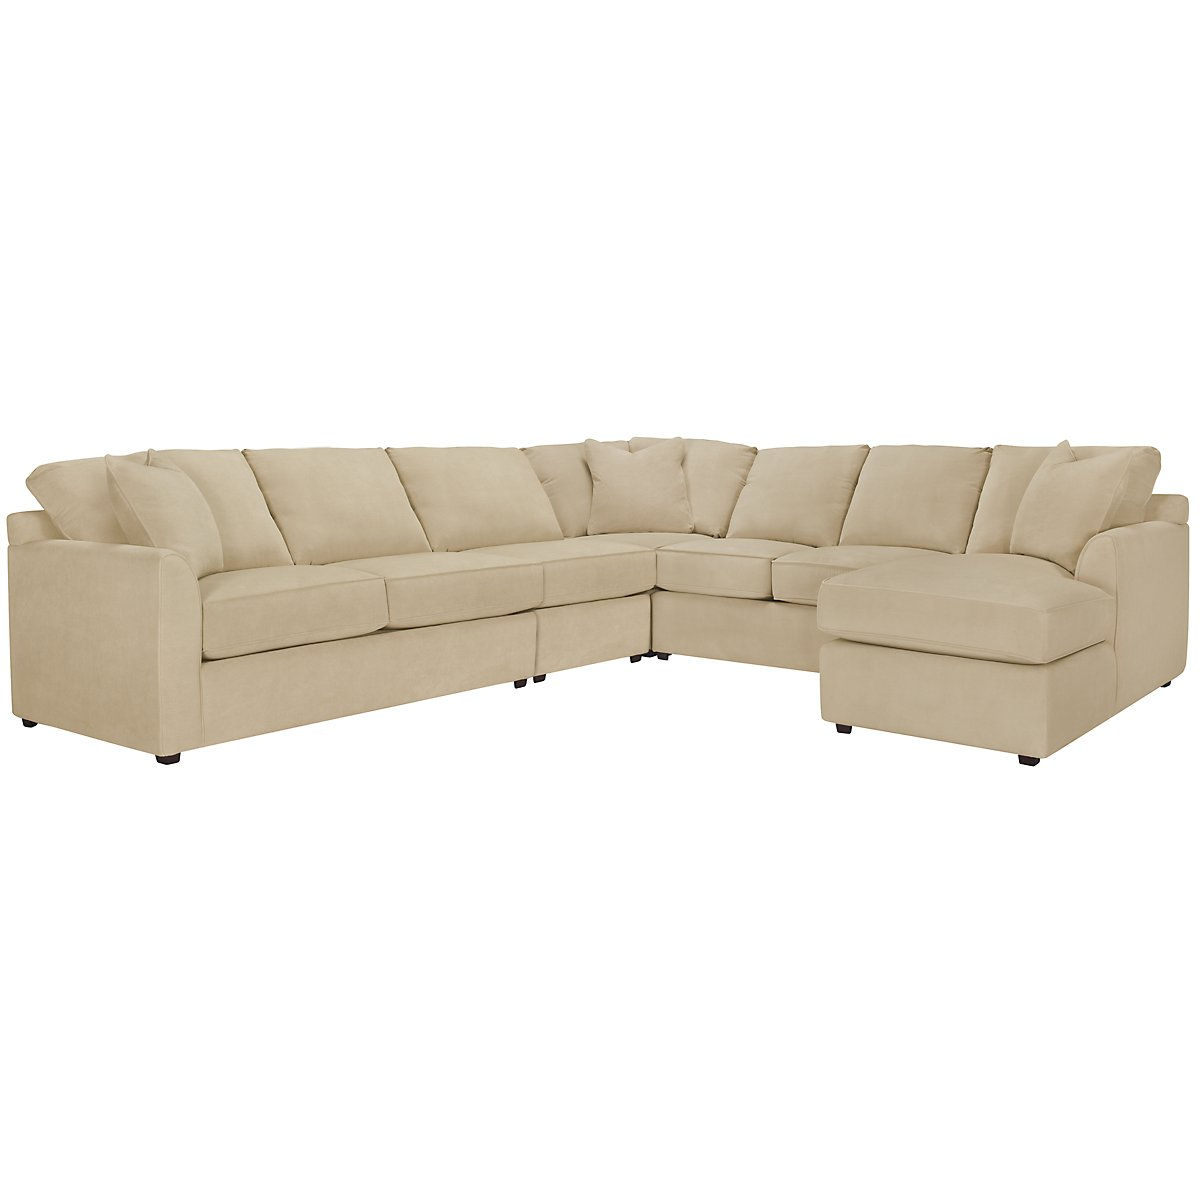 Express3 Lt Beige Microfiber Large Right Chaise Sectional